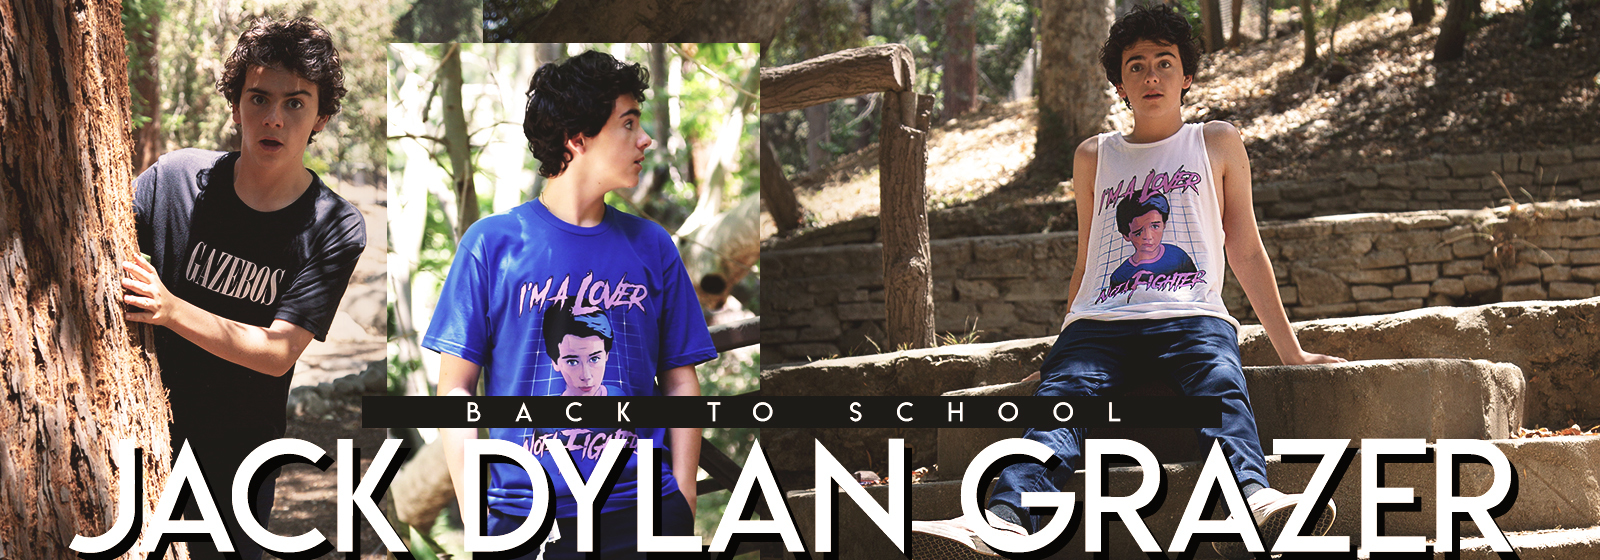 Jack Dylan Grazer BACK TO SCHOOL Store Store